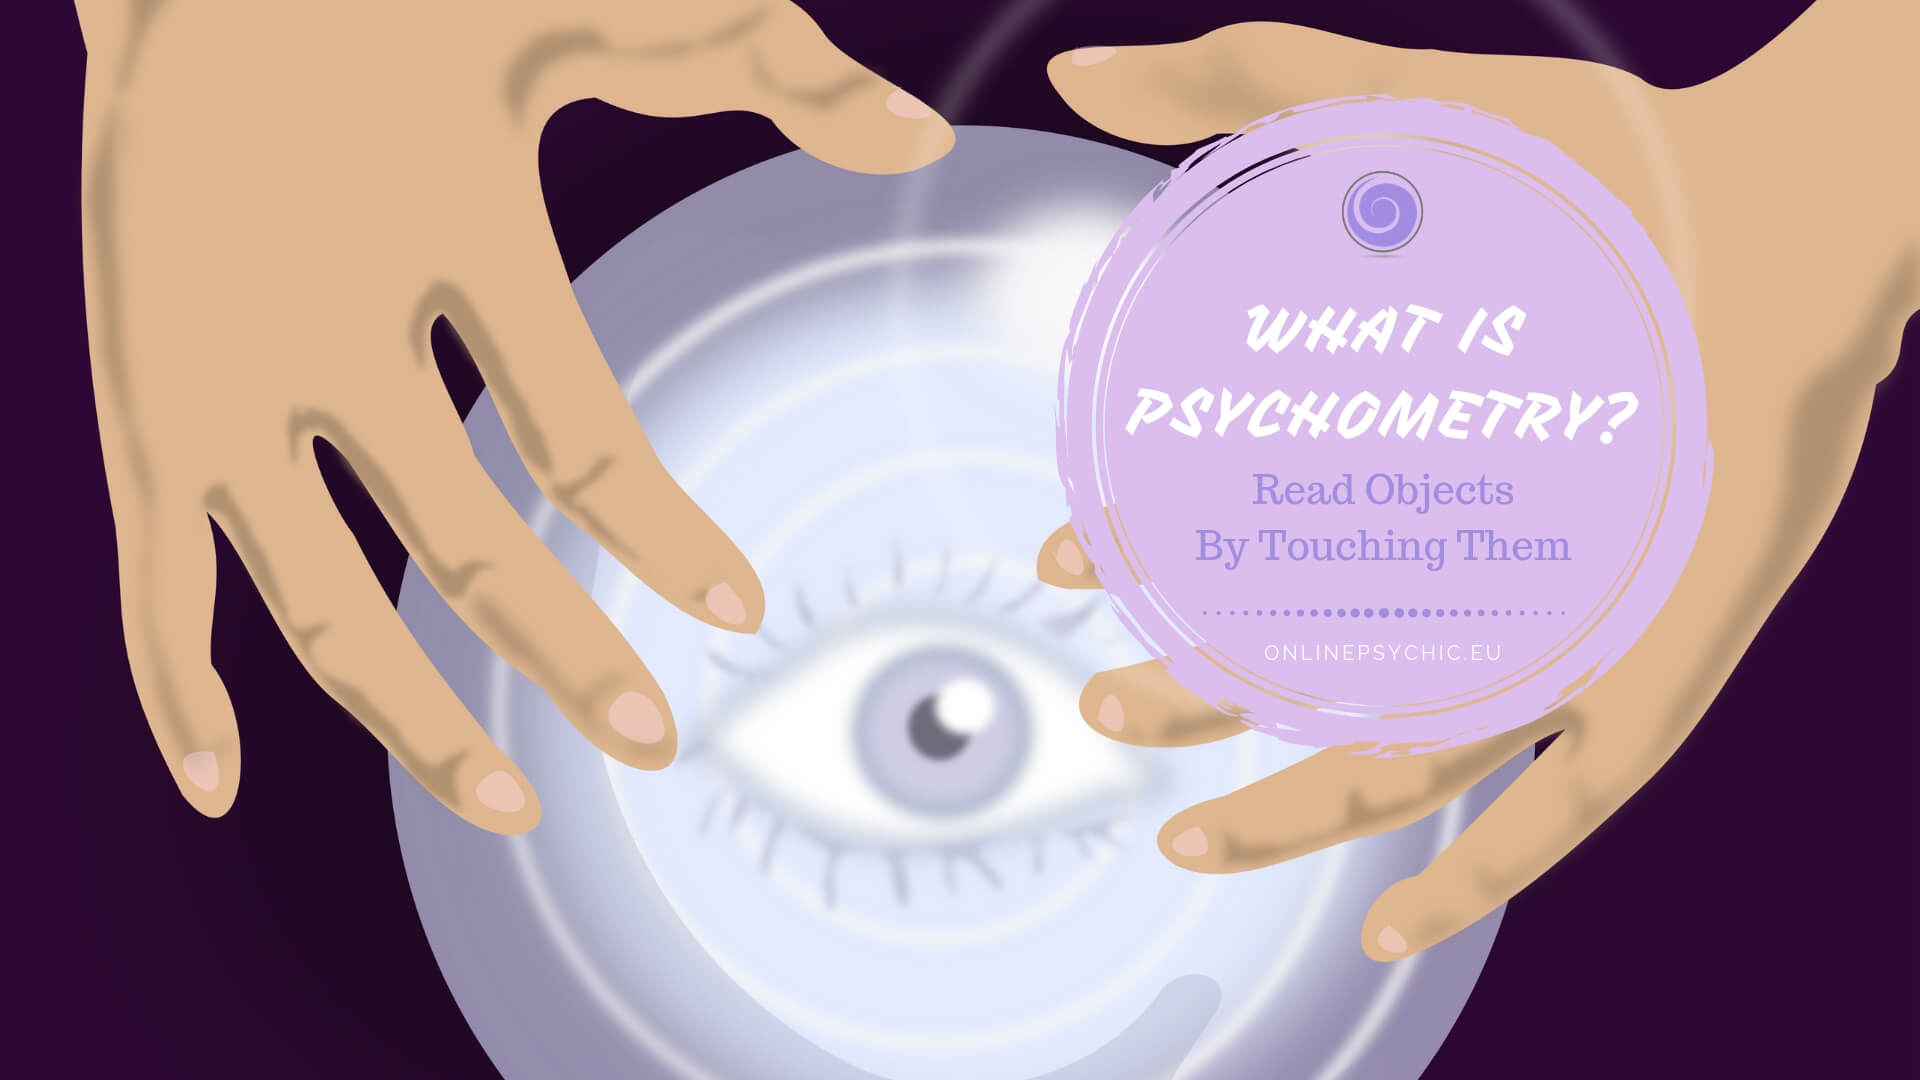 What is psychometry?